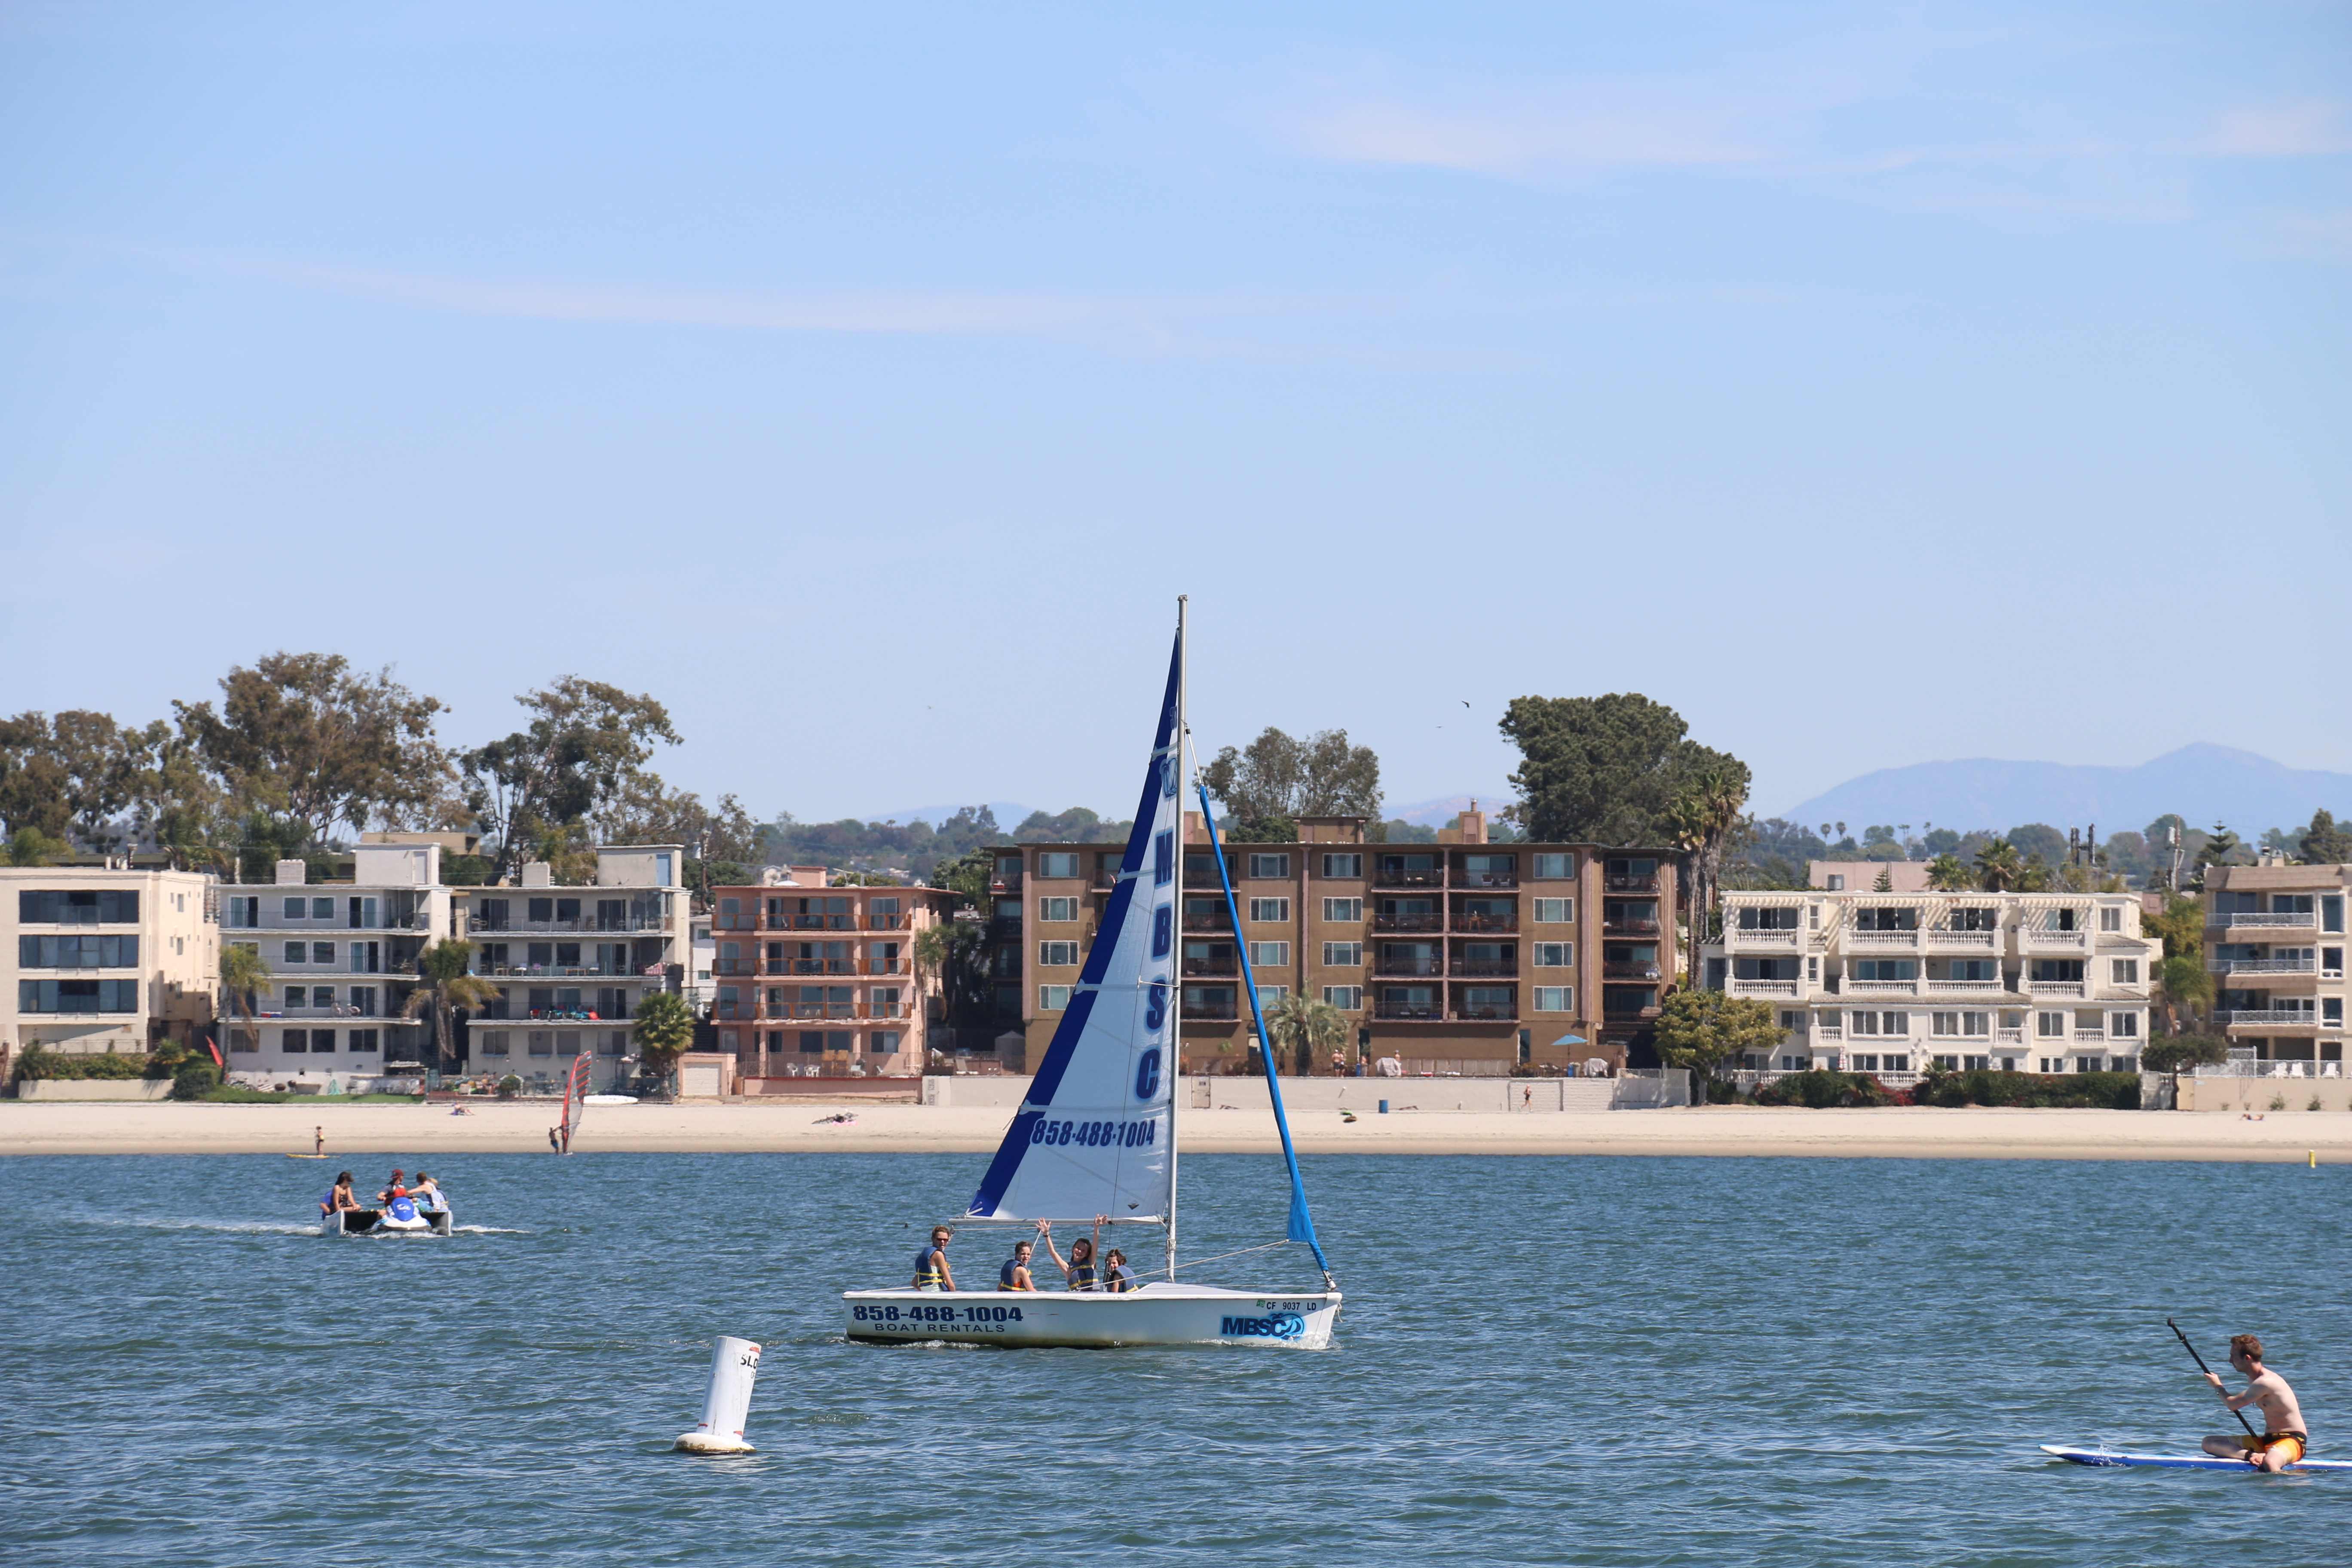 Day 23 – Mission Bay Sailing